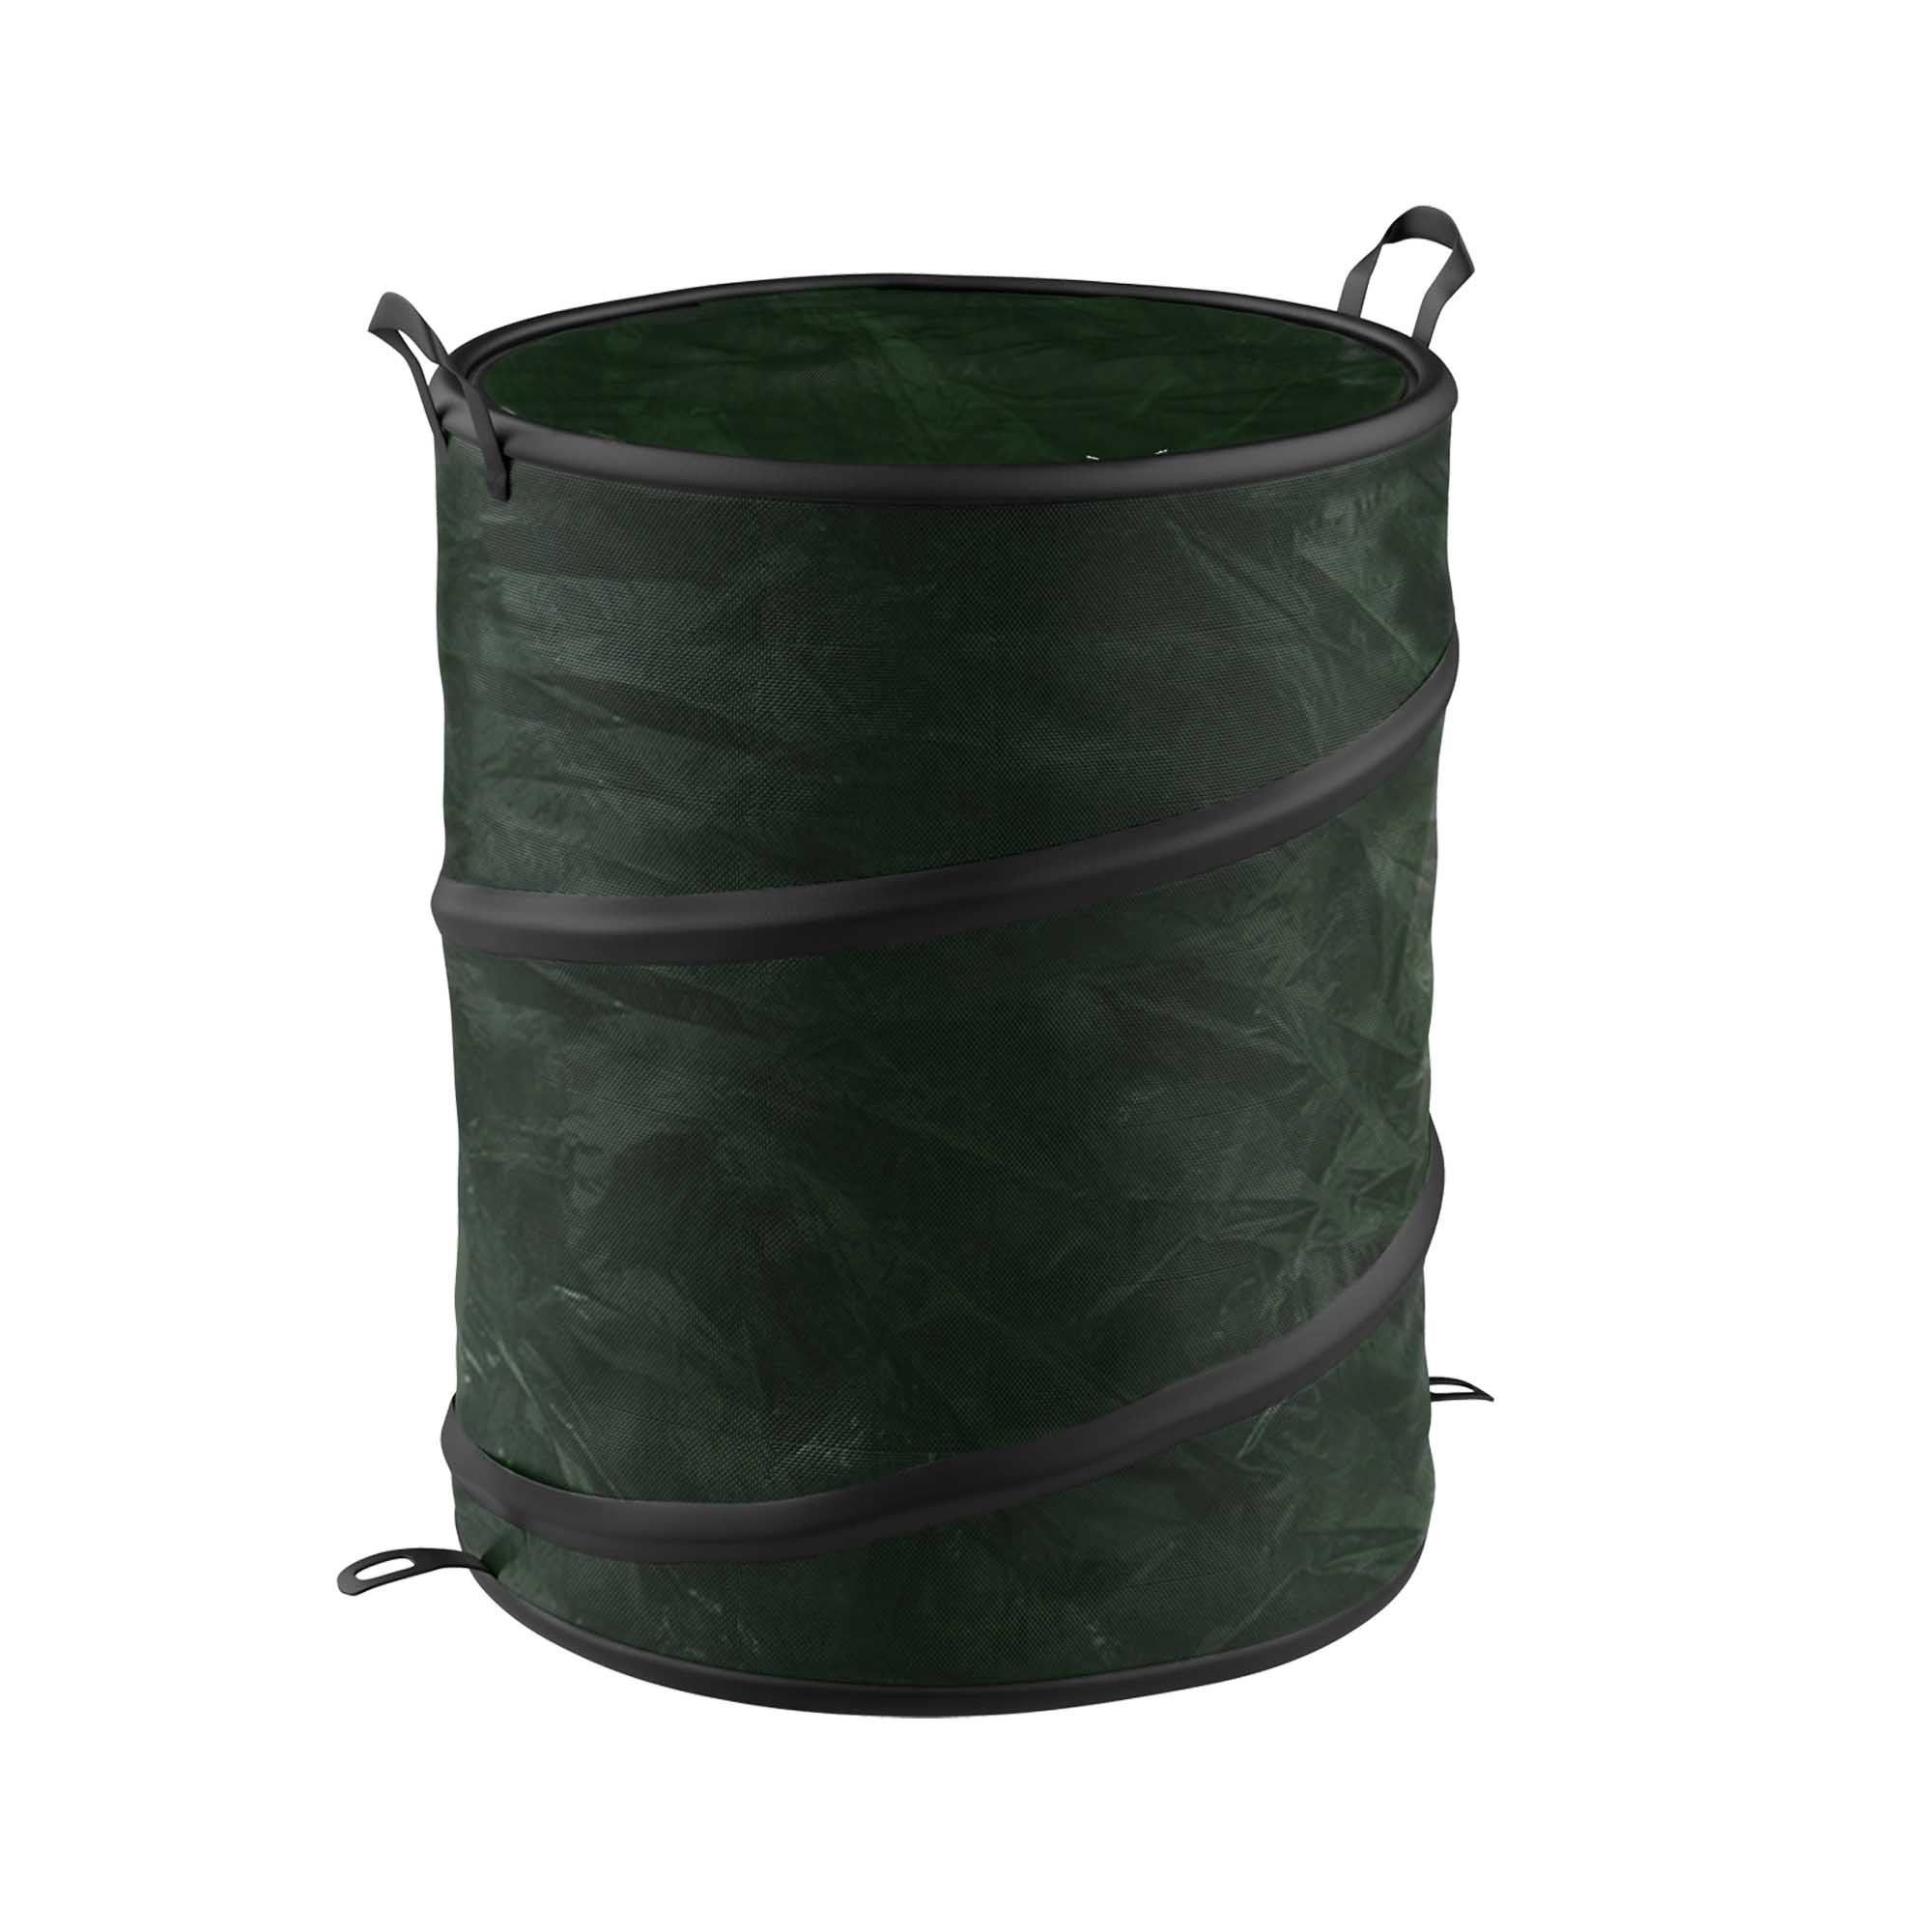 Collapsible Trash Can